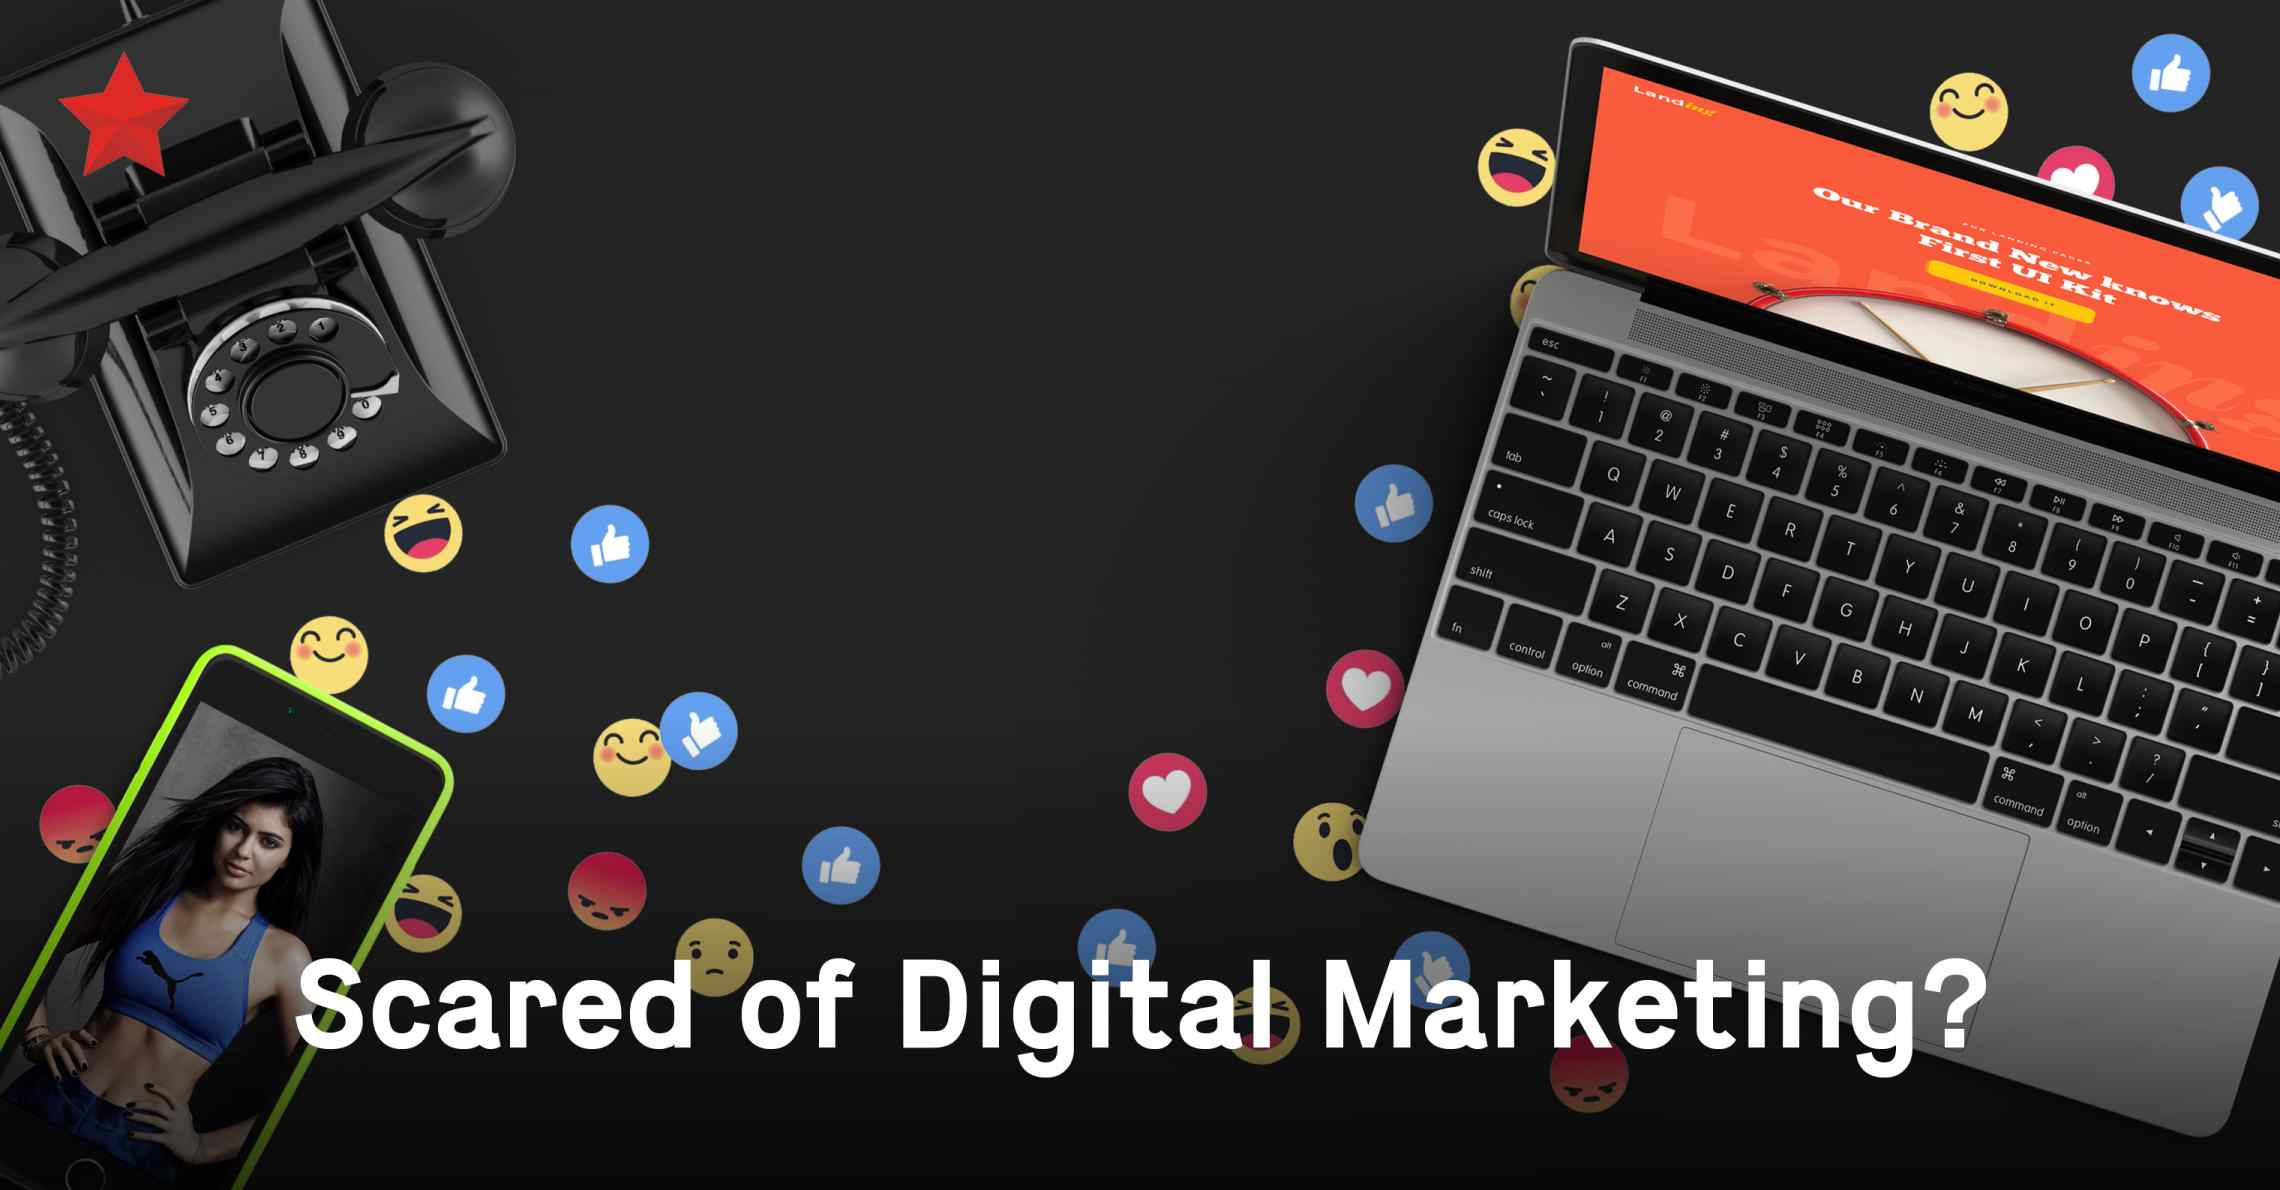 Scared of Digital? Here's the Alternative Marketing Guide